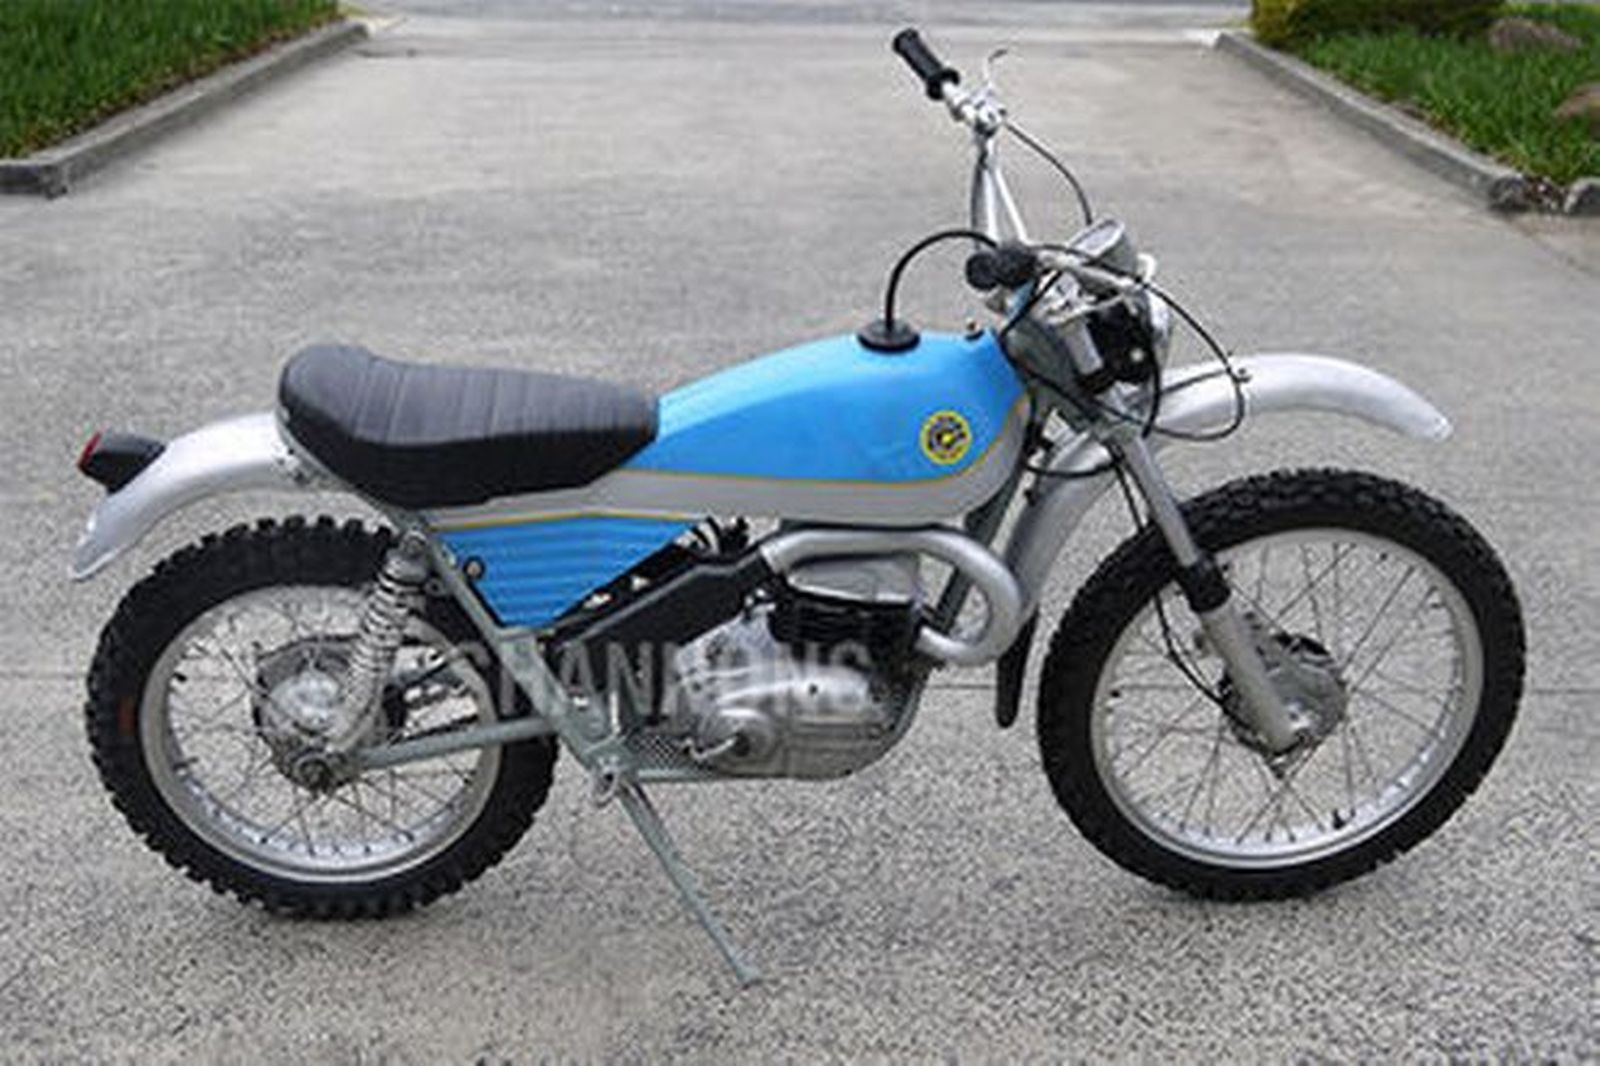 Sold: Bultaco Alpina 350cc Motorcycle Auctions - Lot 6 - Shannons